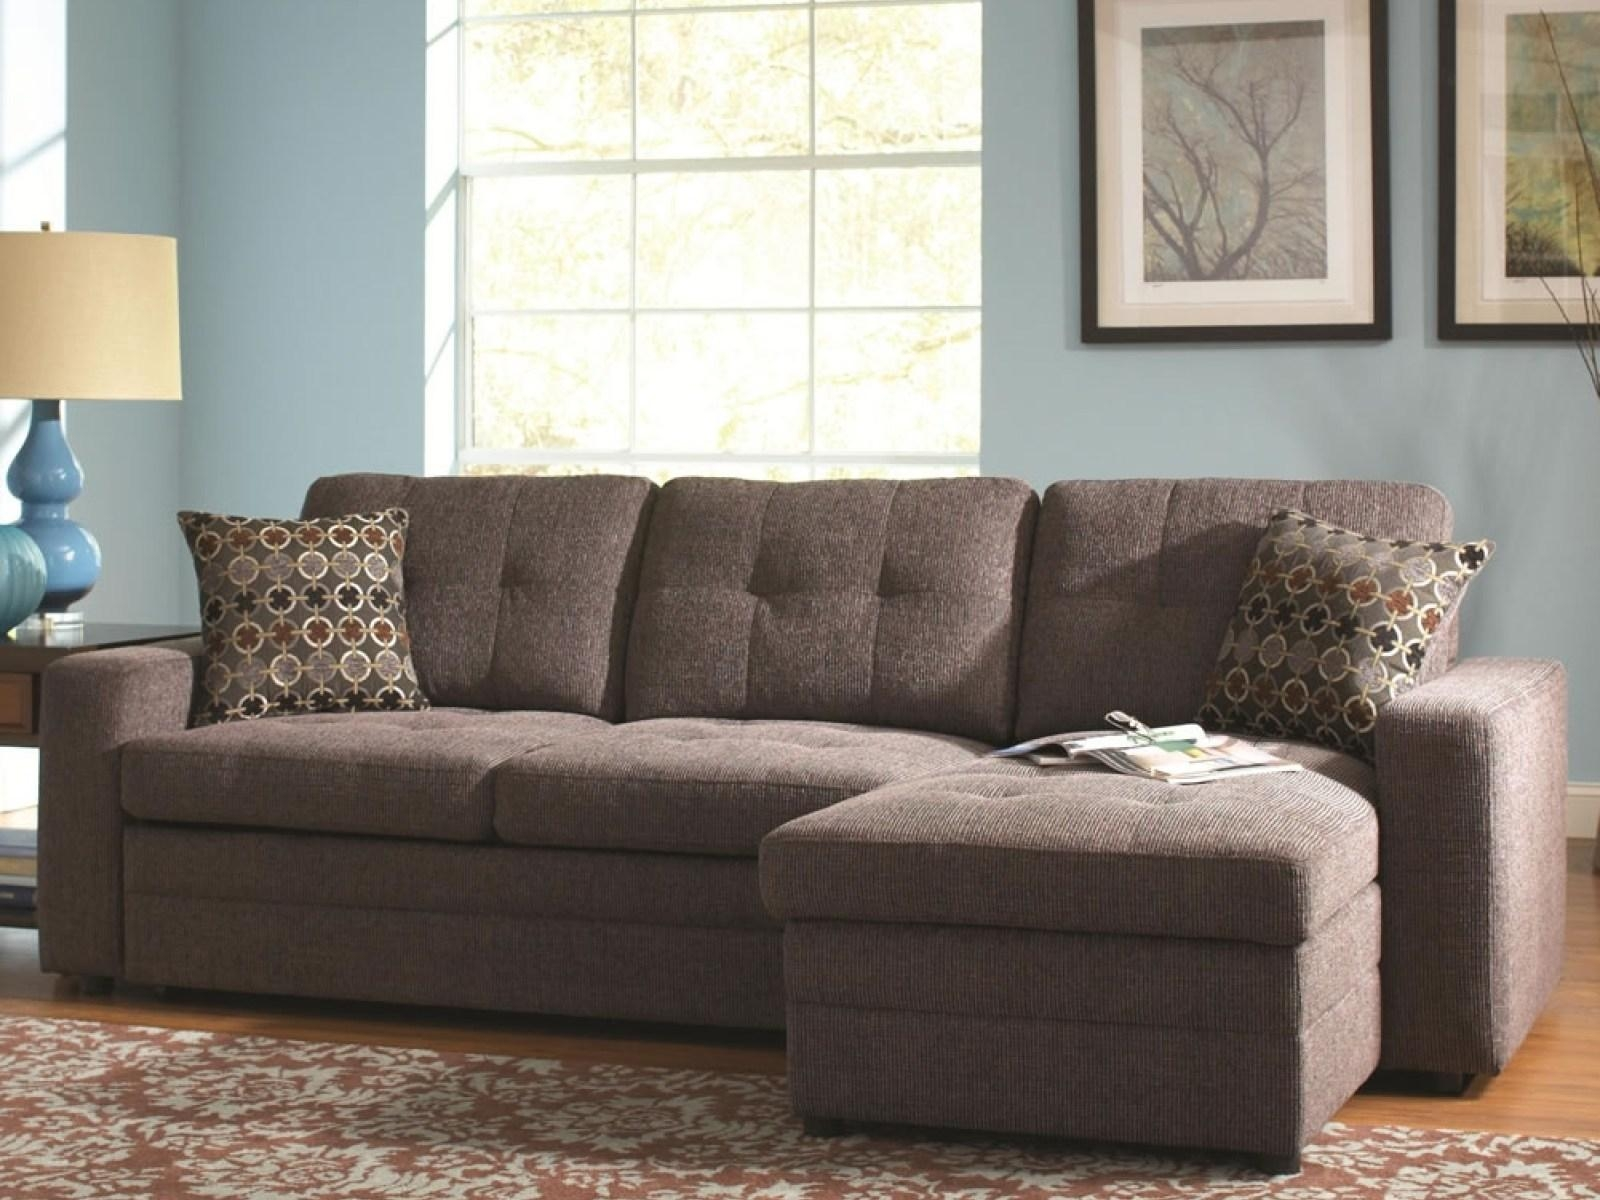 ☆▻ Sofa : 15 Good Looking Reclining Sectional Sofas For Small Pertaining To Sectional Small Spaces (Image 1 of 20)